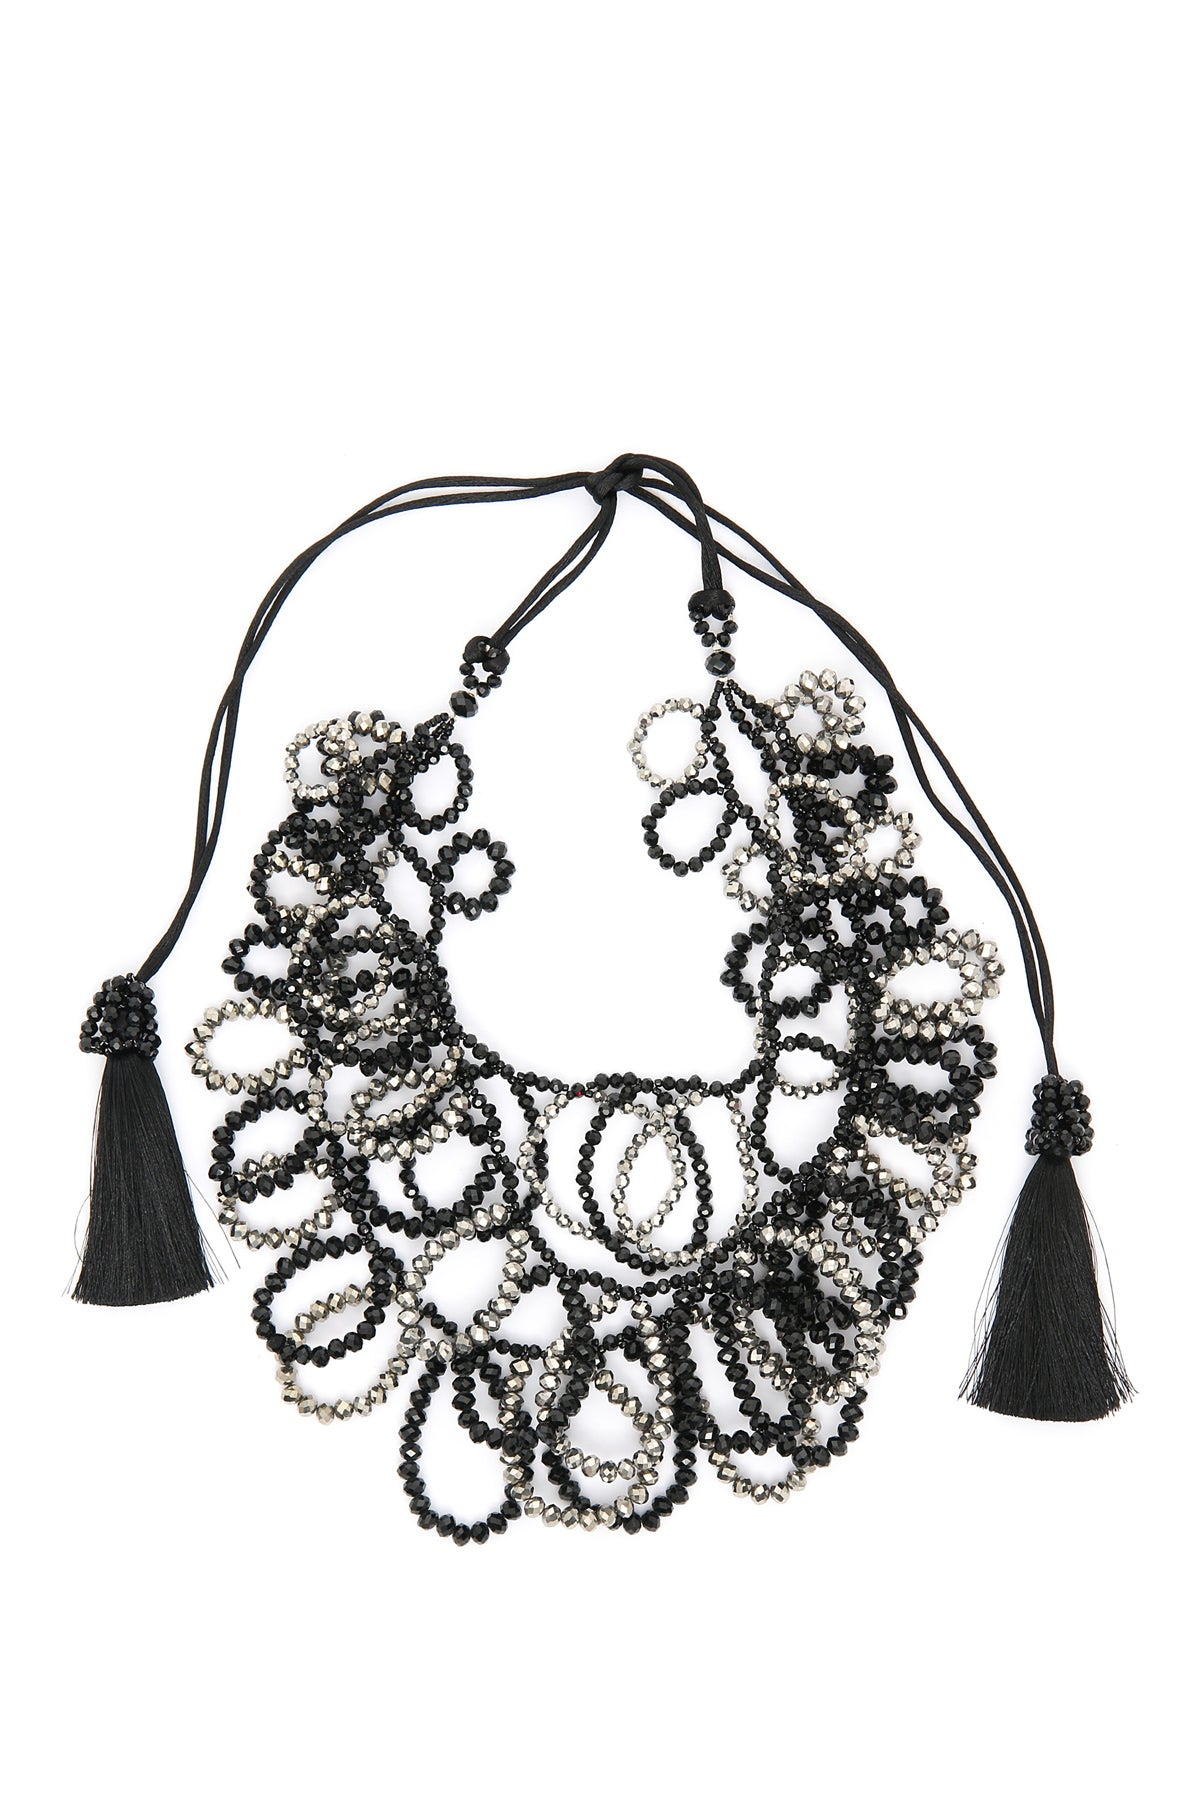 NIGHT MARKET CIRCLE CHAIN NECKLACE